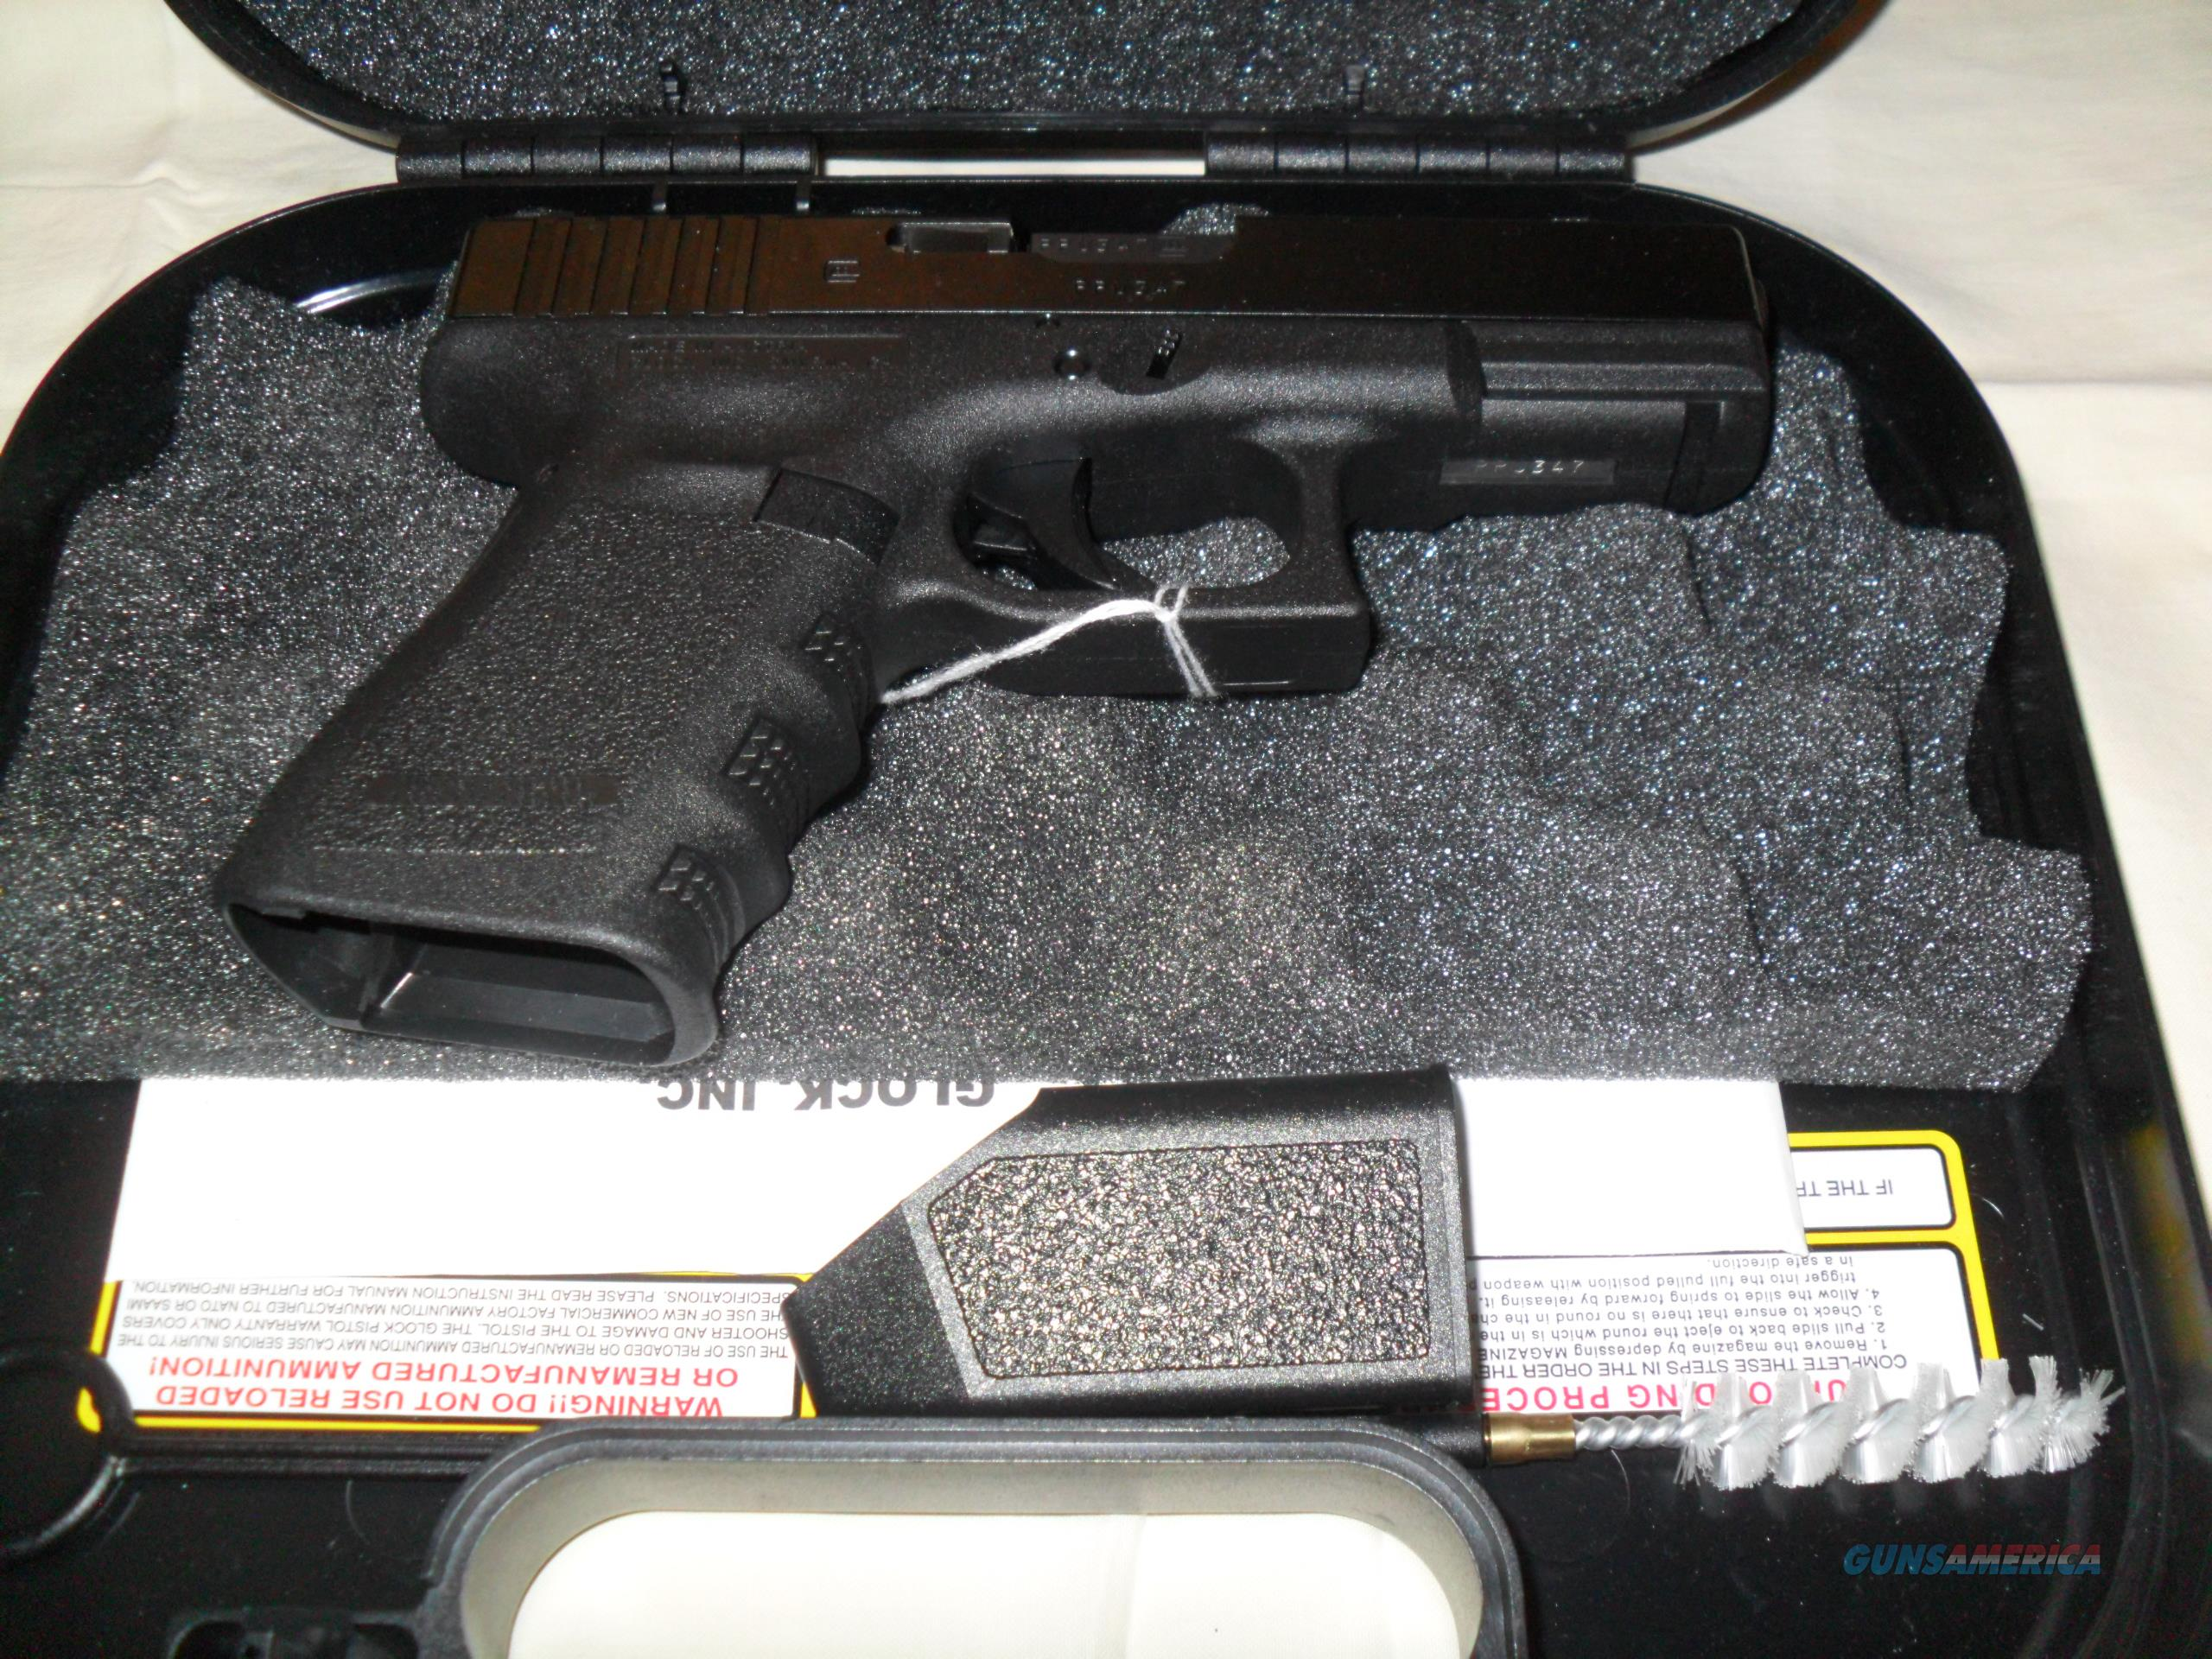 Glock Model 19 9mm 4th Gen